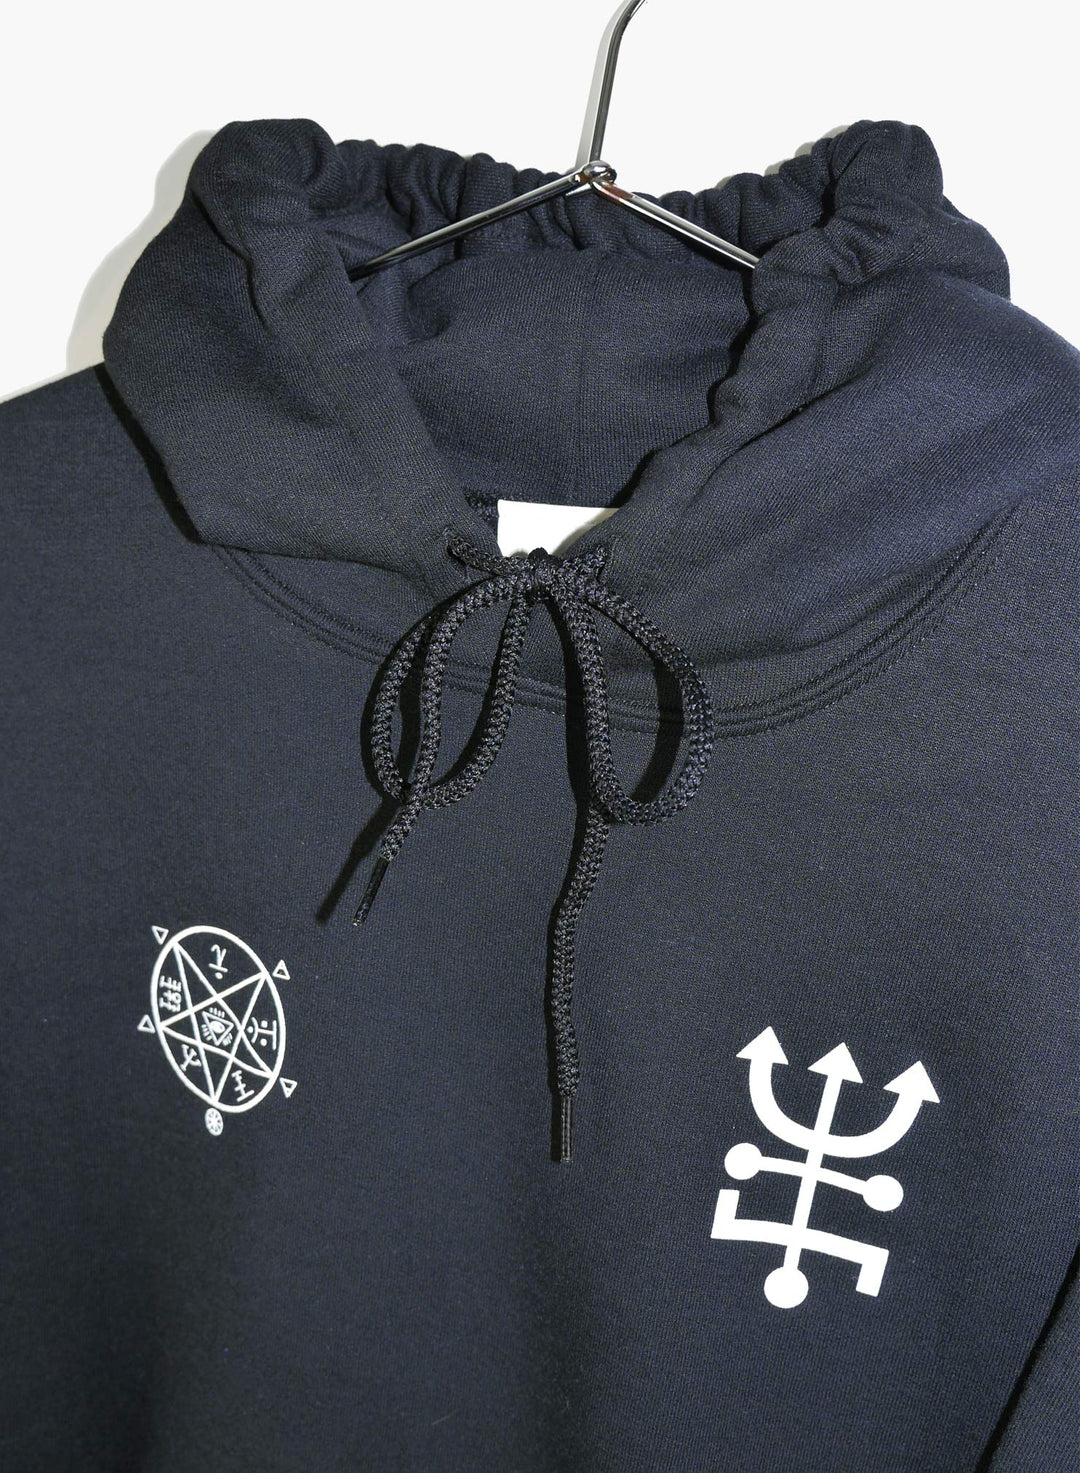 Black hoodie with crystal vision design hand screen printed.